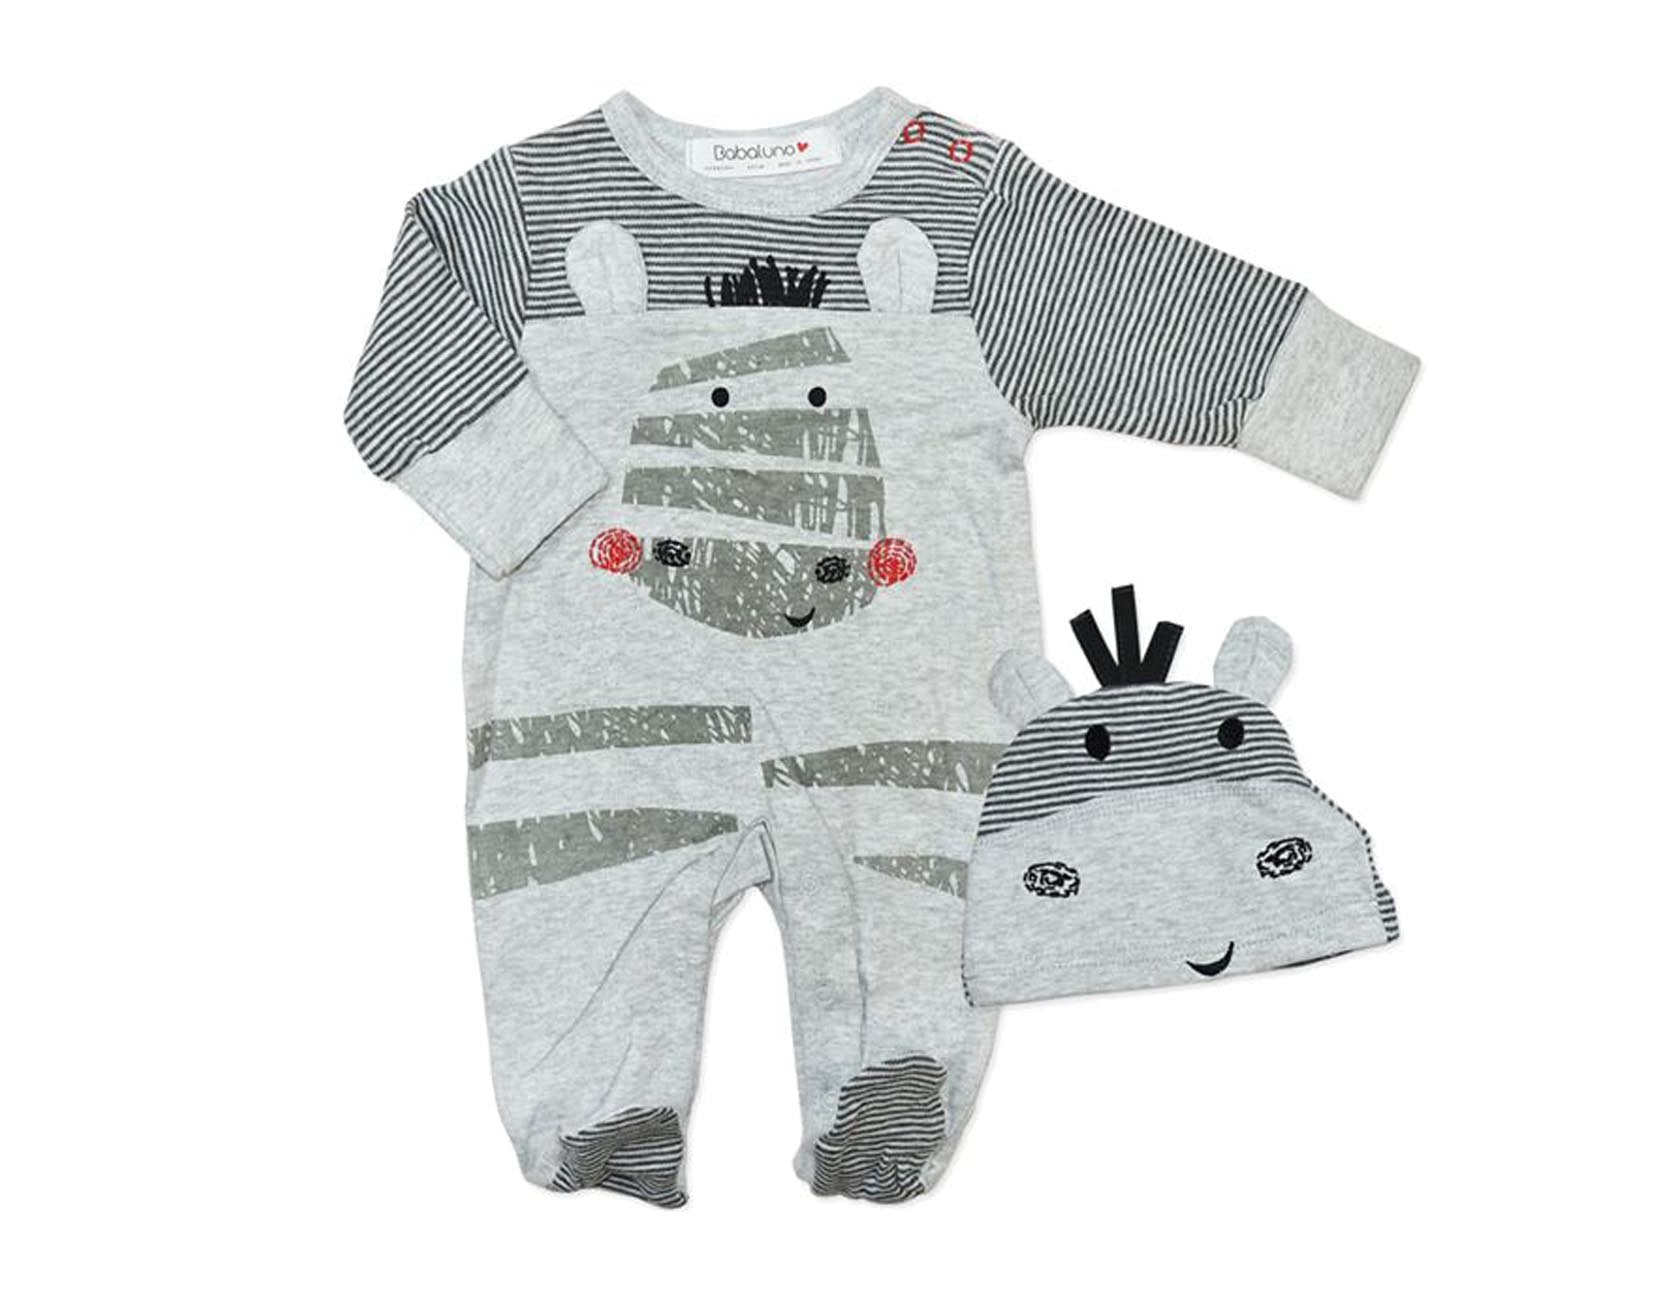 37cecb554689 Zebra Long Sleeve Romper with Matching Hat - The Little Baby Shop